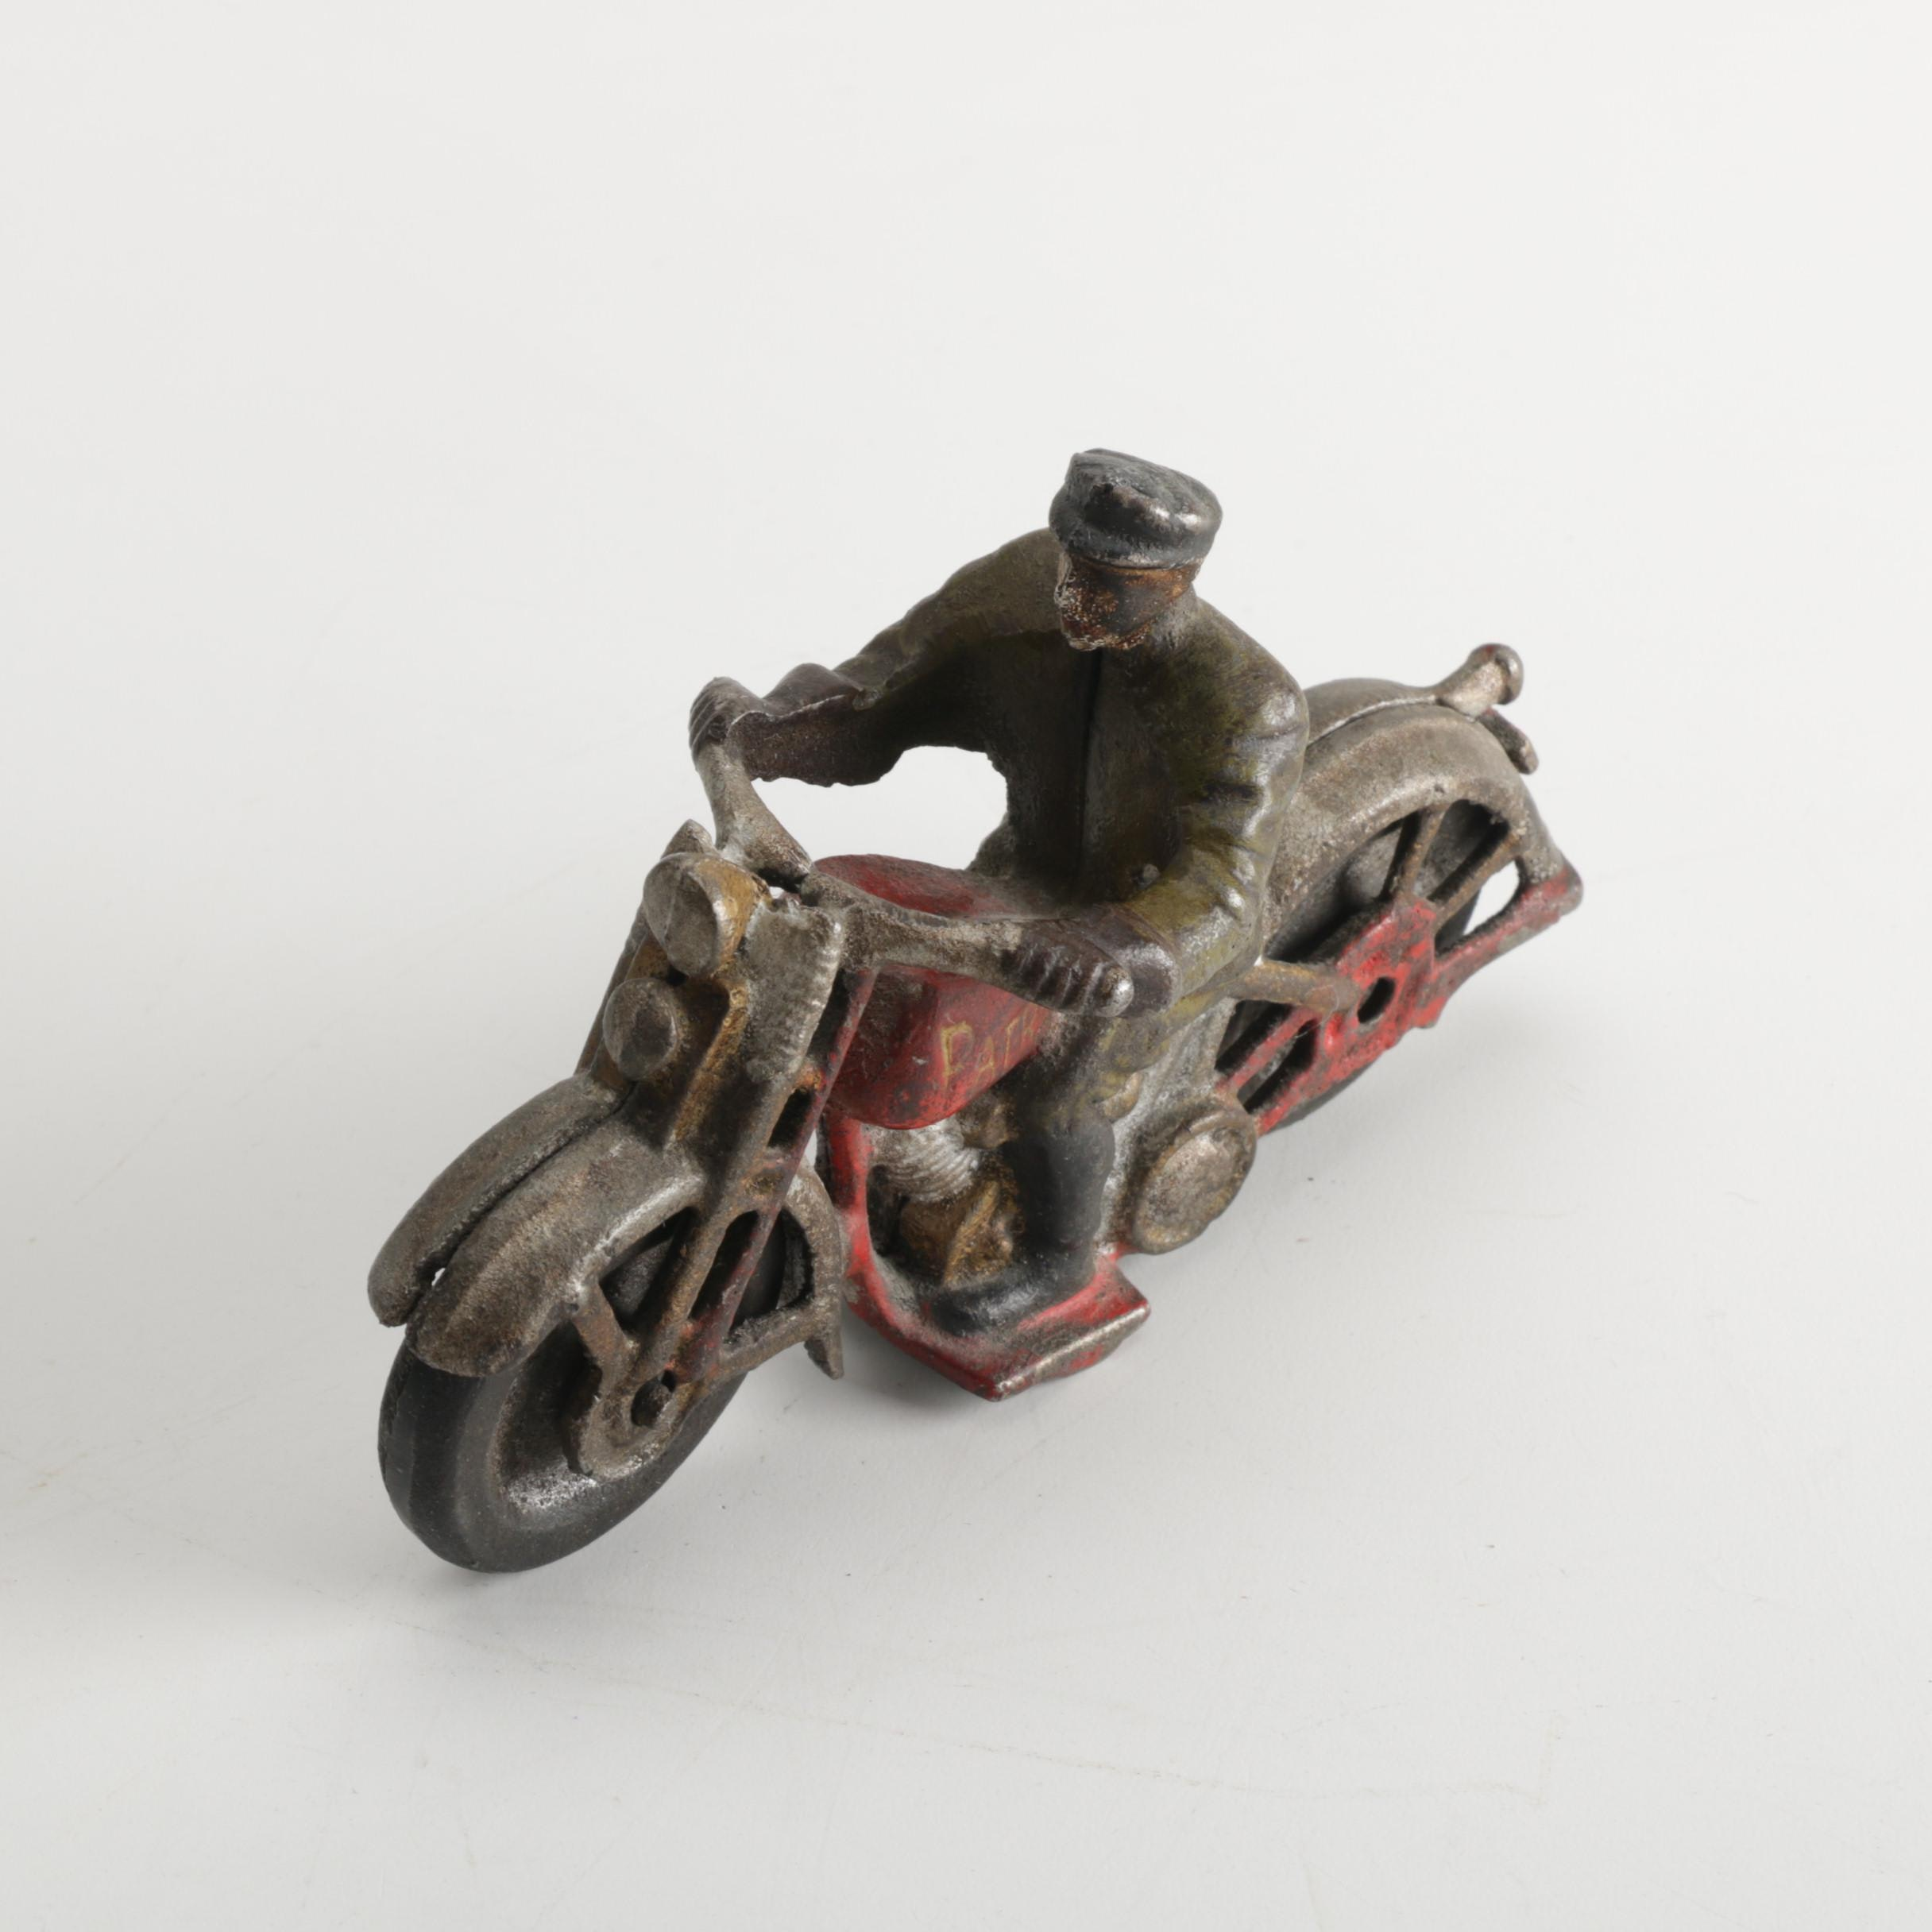 1930s Hubley Cast Iron Motorcycle